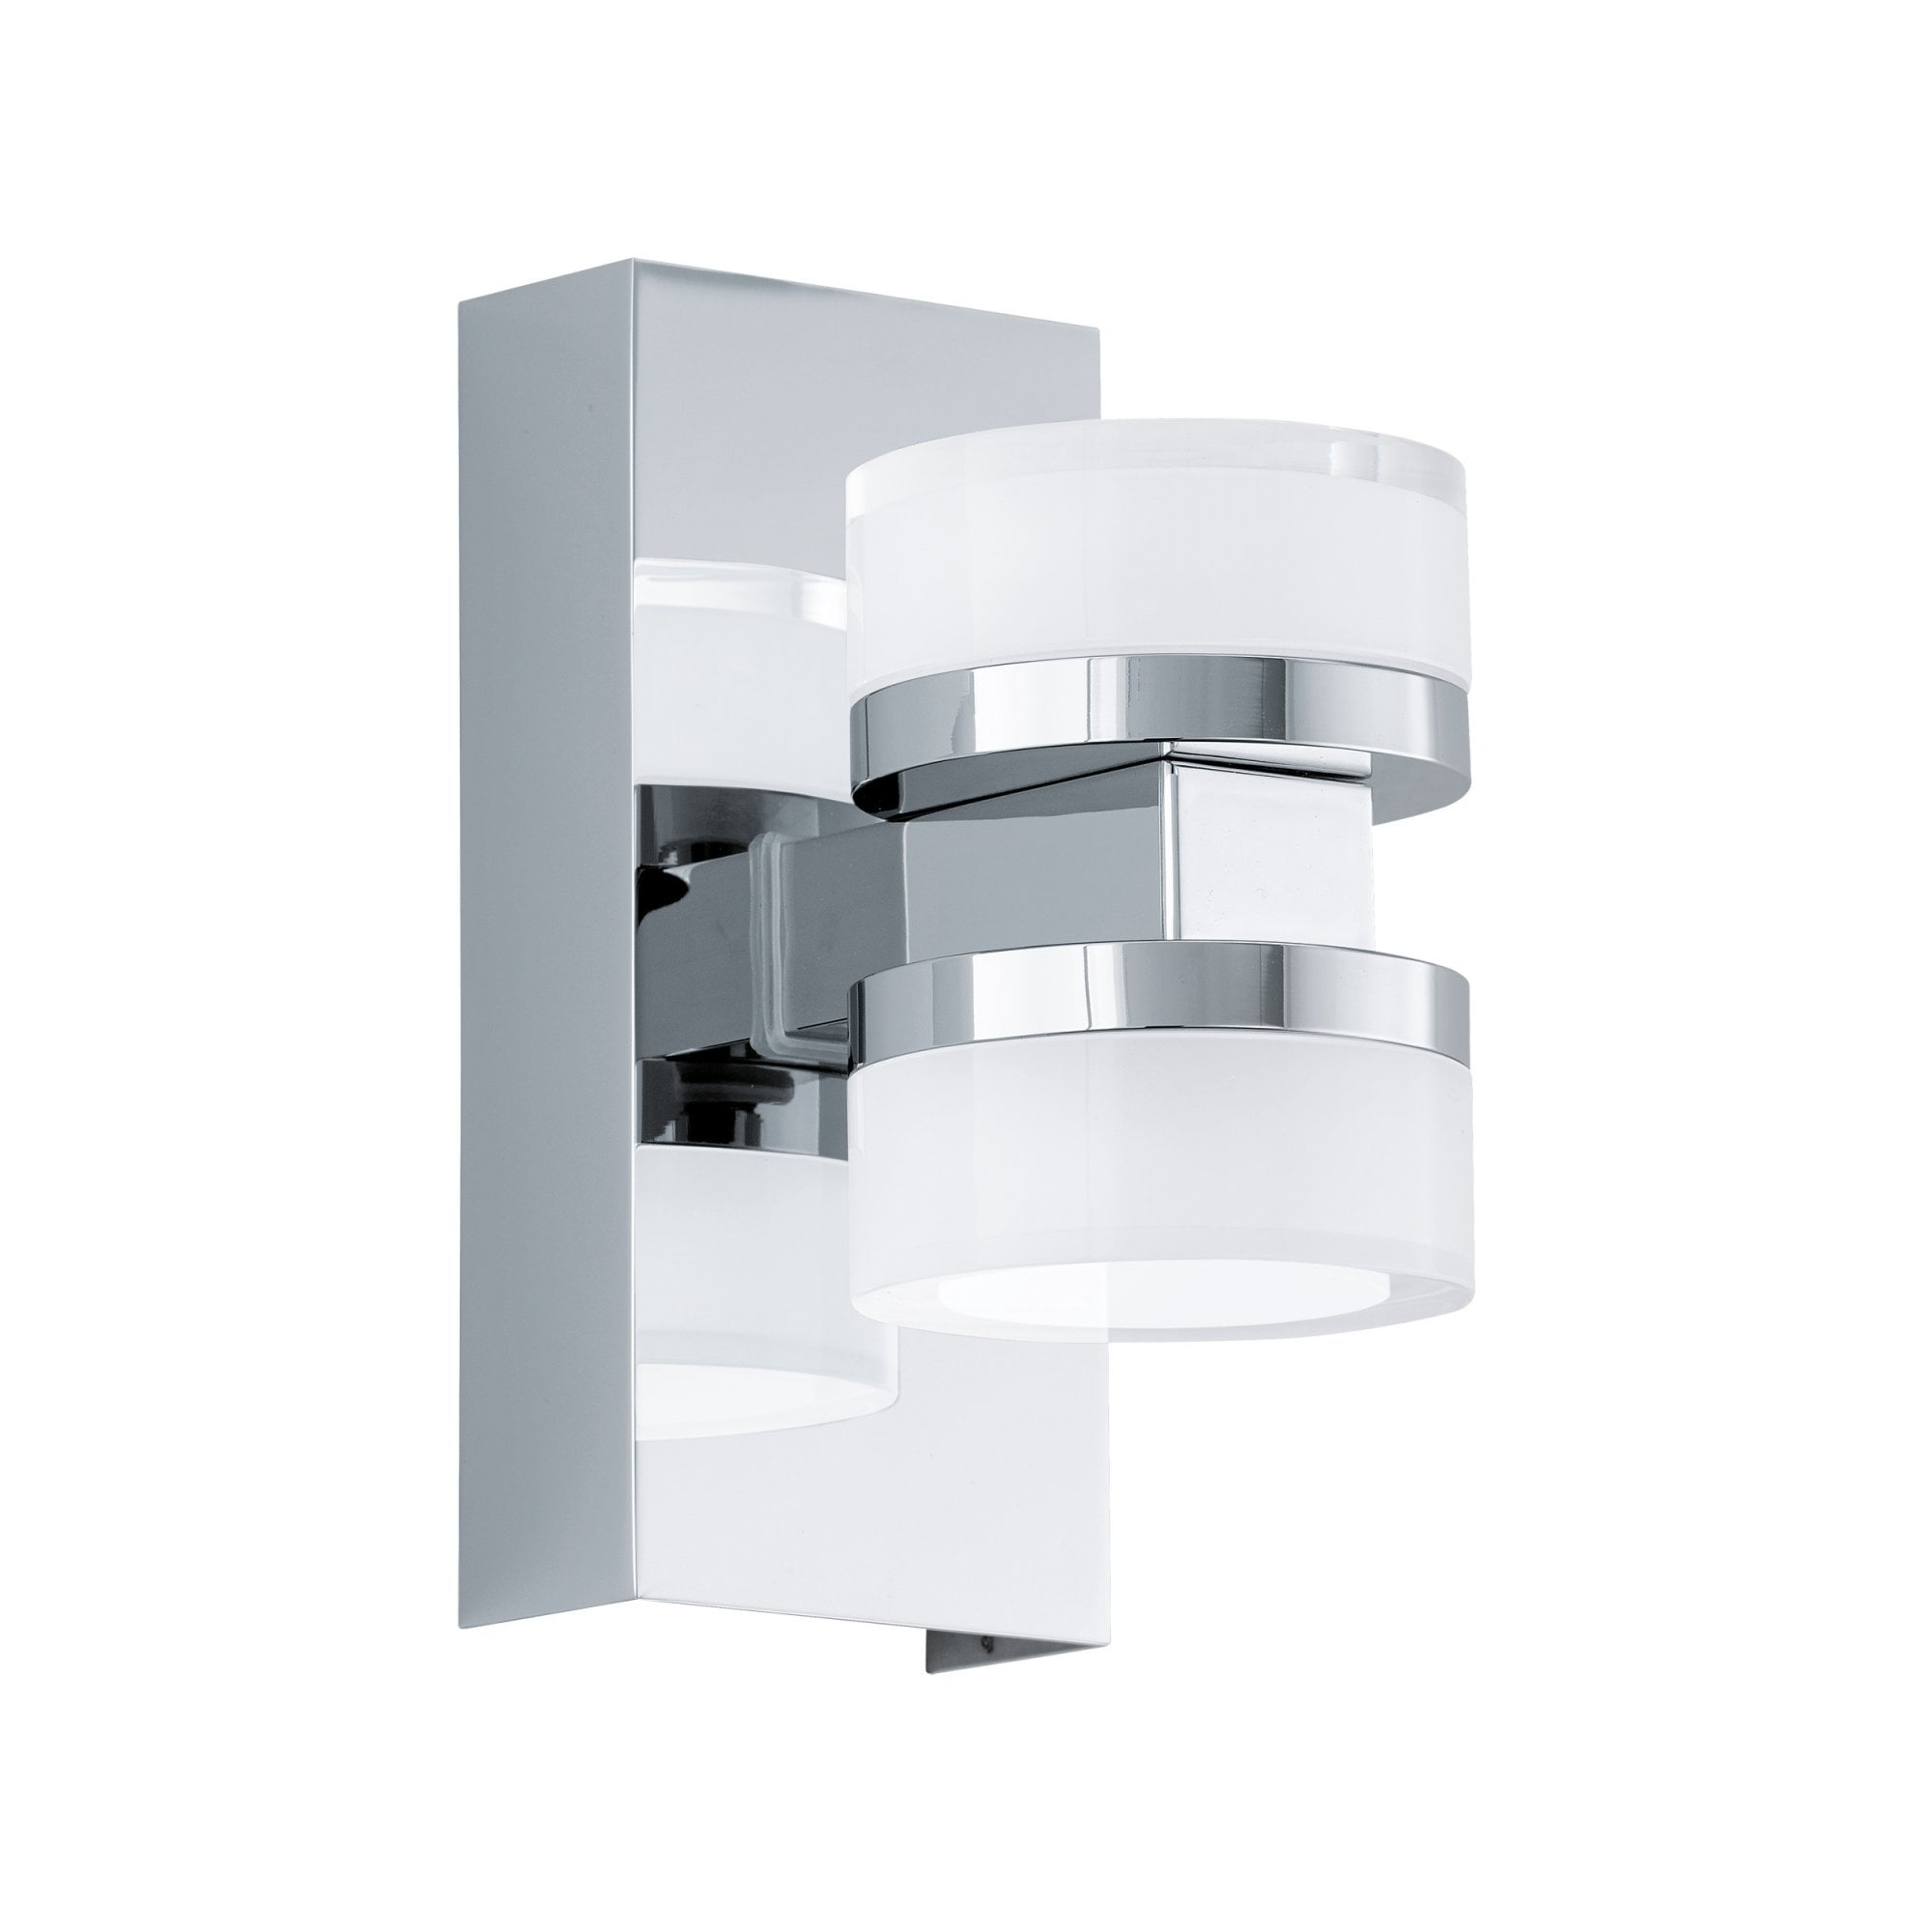 Eglo Lighting Romendo 1 Modern LED Dimmable Bathroom Up And Down Wall Light IP44 96541